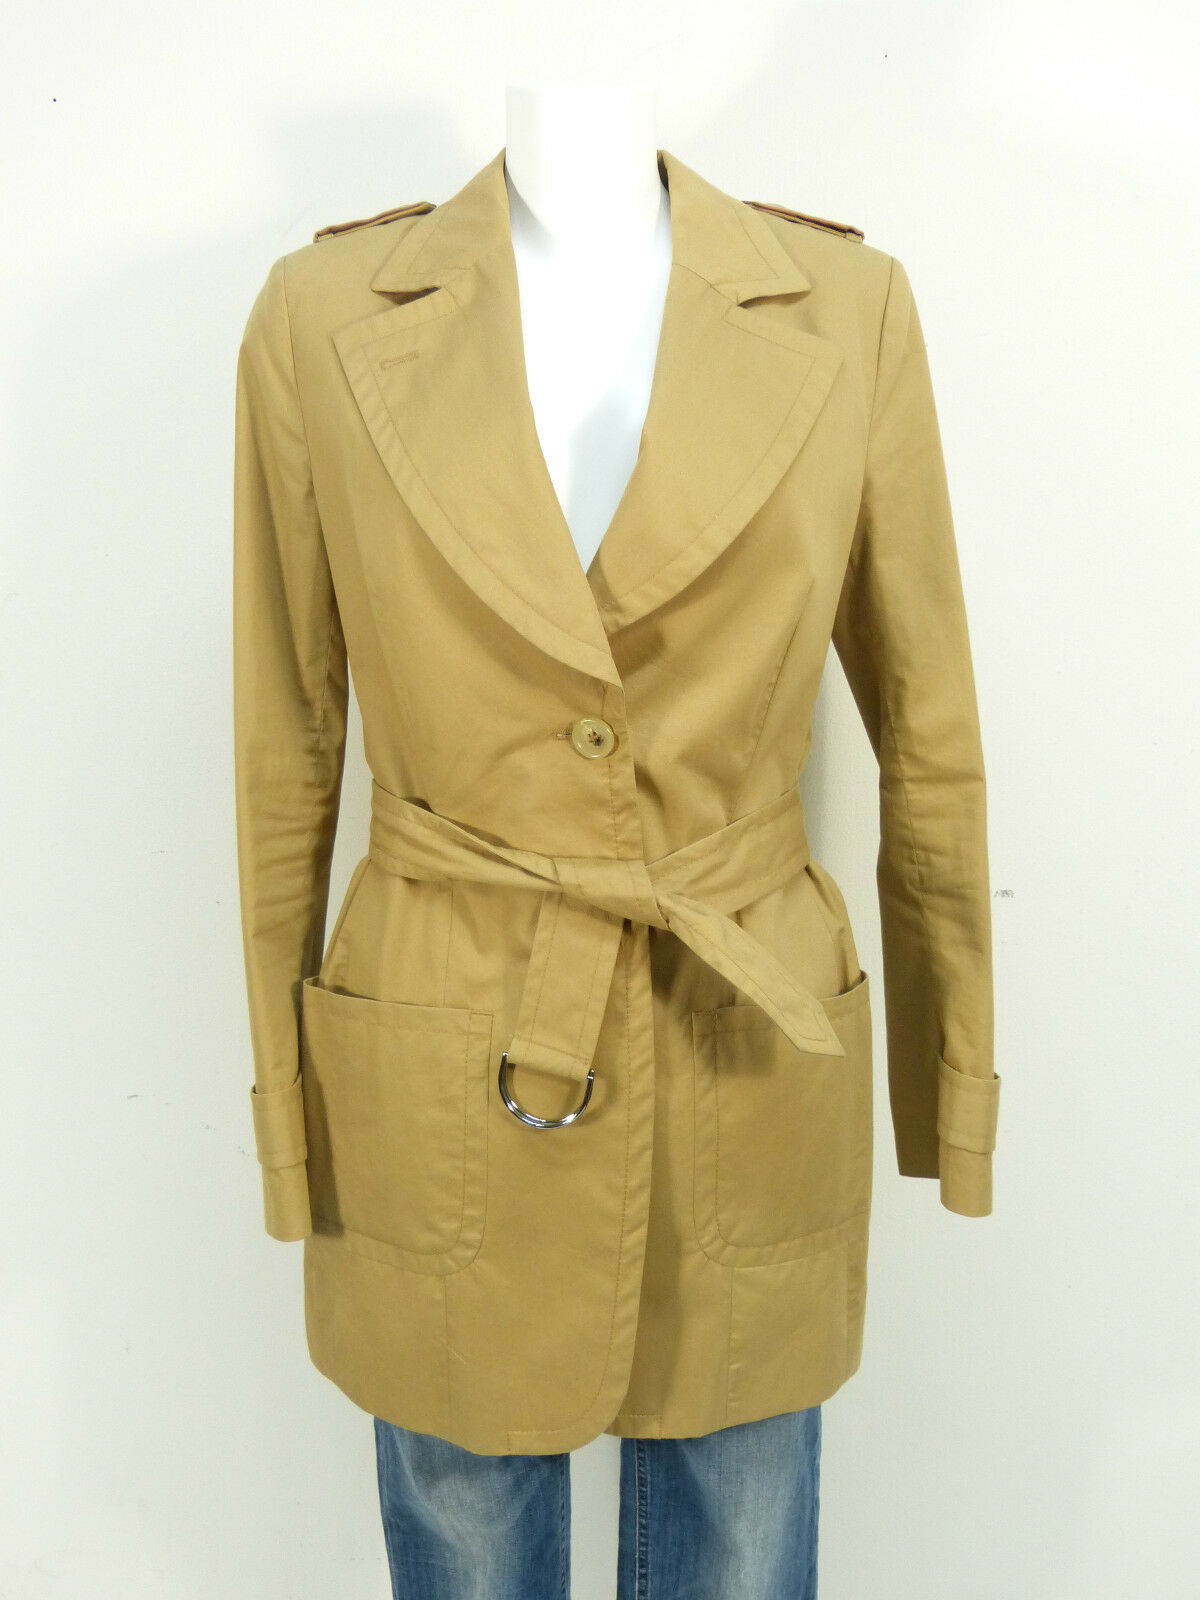 TIGER OF SWEDEN MANTEL GR.40   BRAUN & LUXUS PUR - TRENCHCOAT   ( J 9300 P )